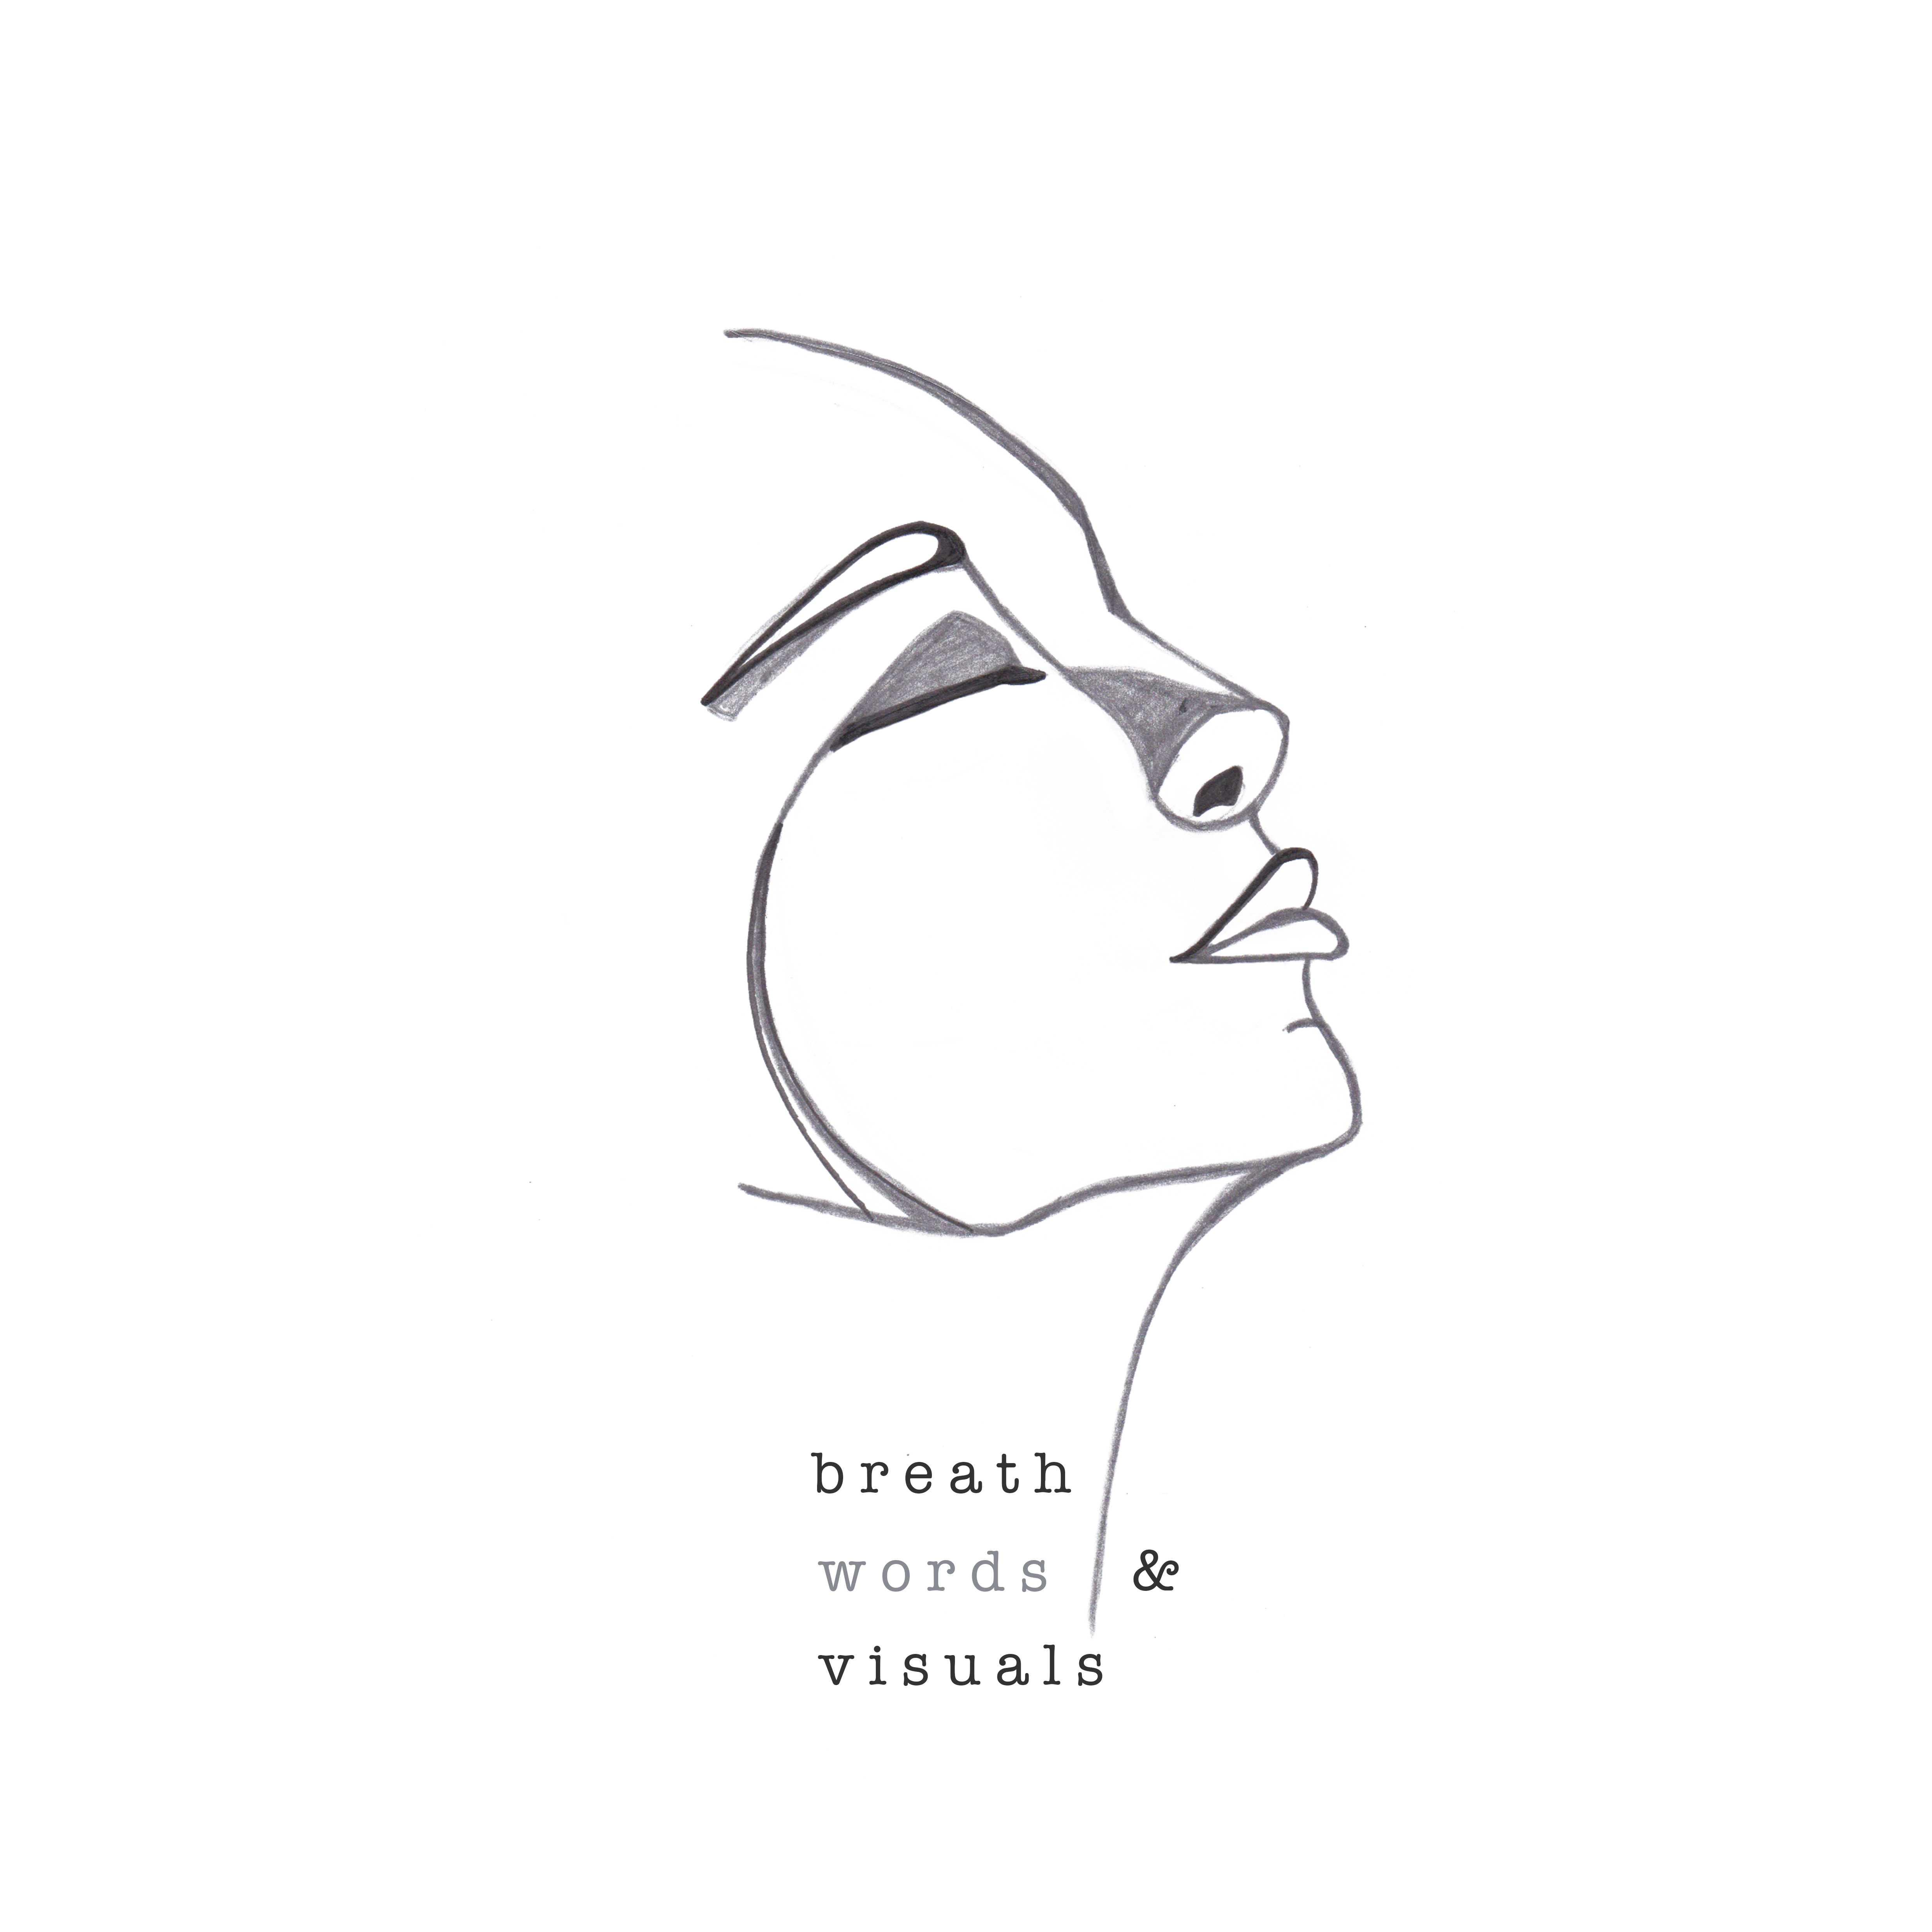 Breath Words & Visuals